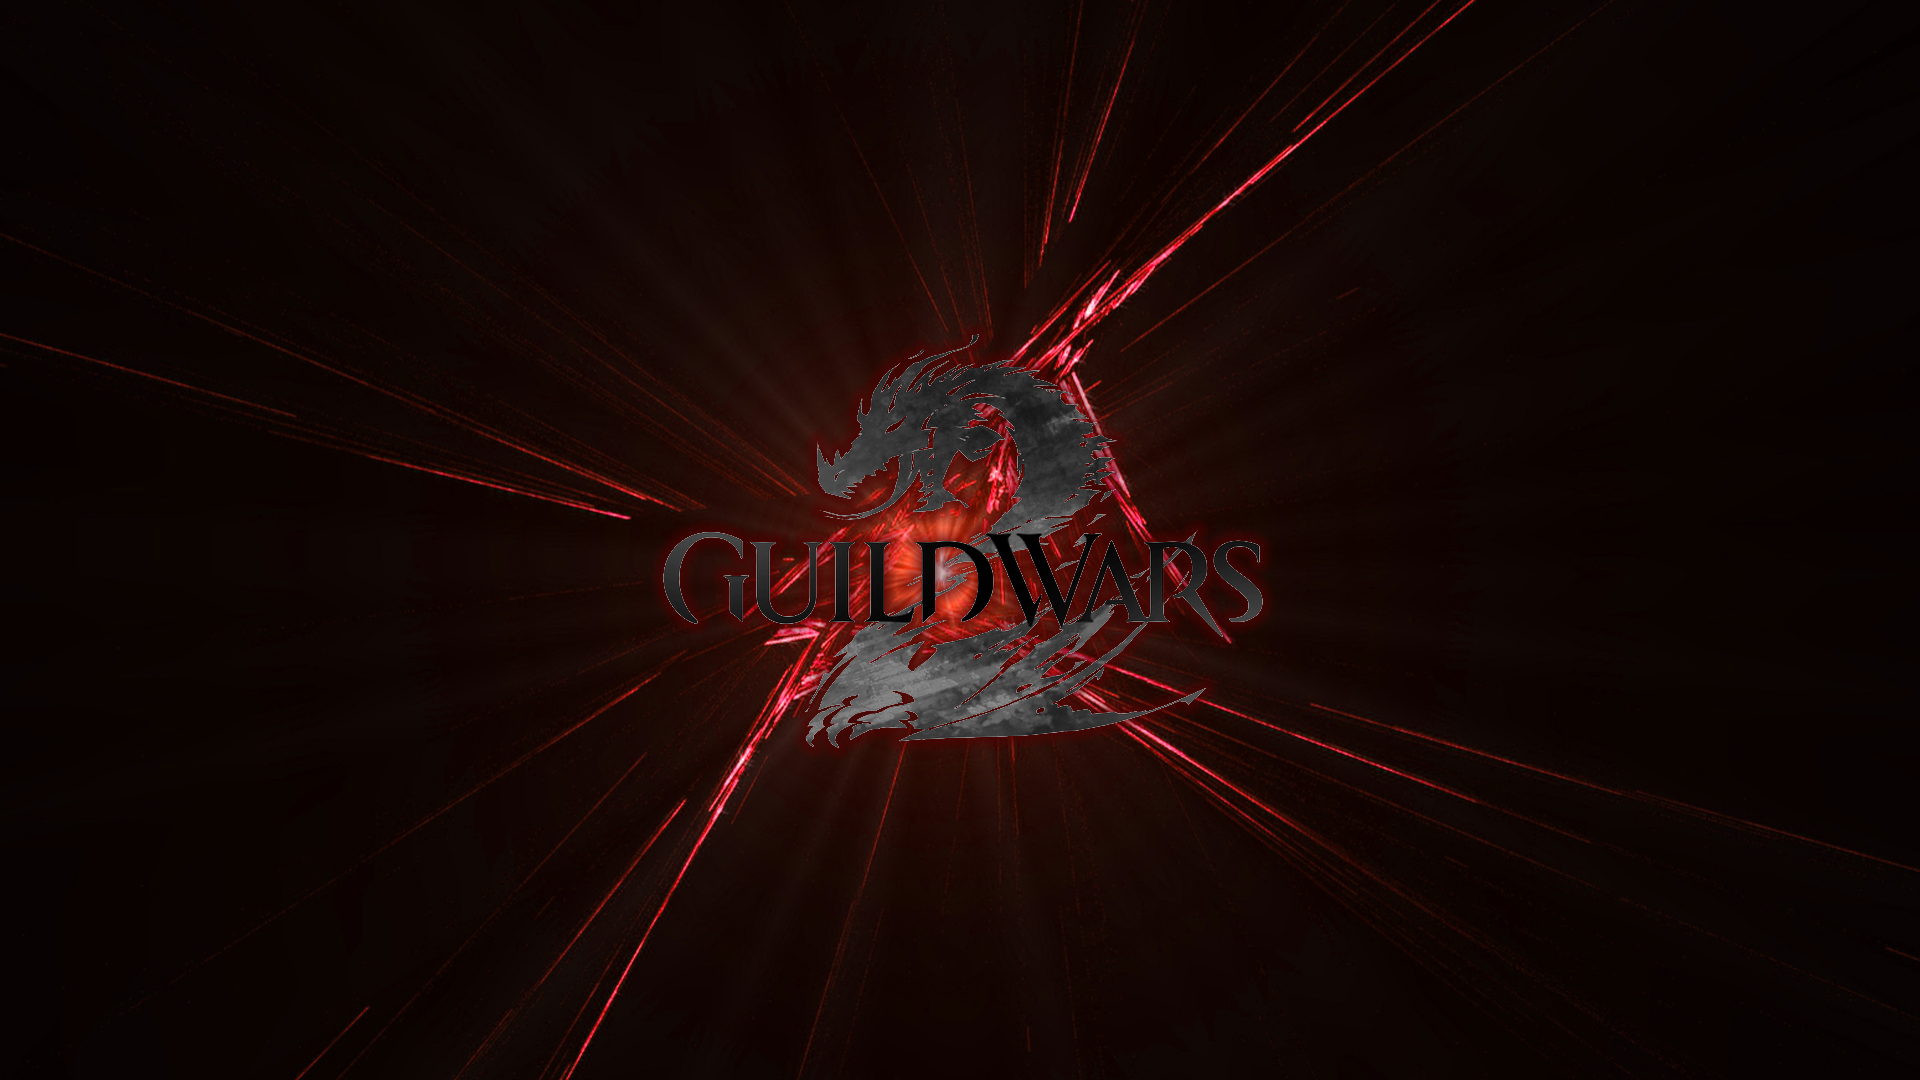 Guild Wars 2 Wallpaper By Trevrath On Deviantart